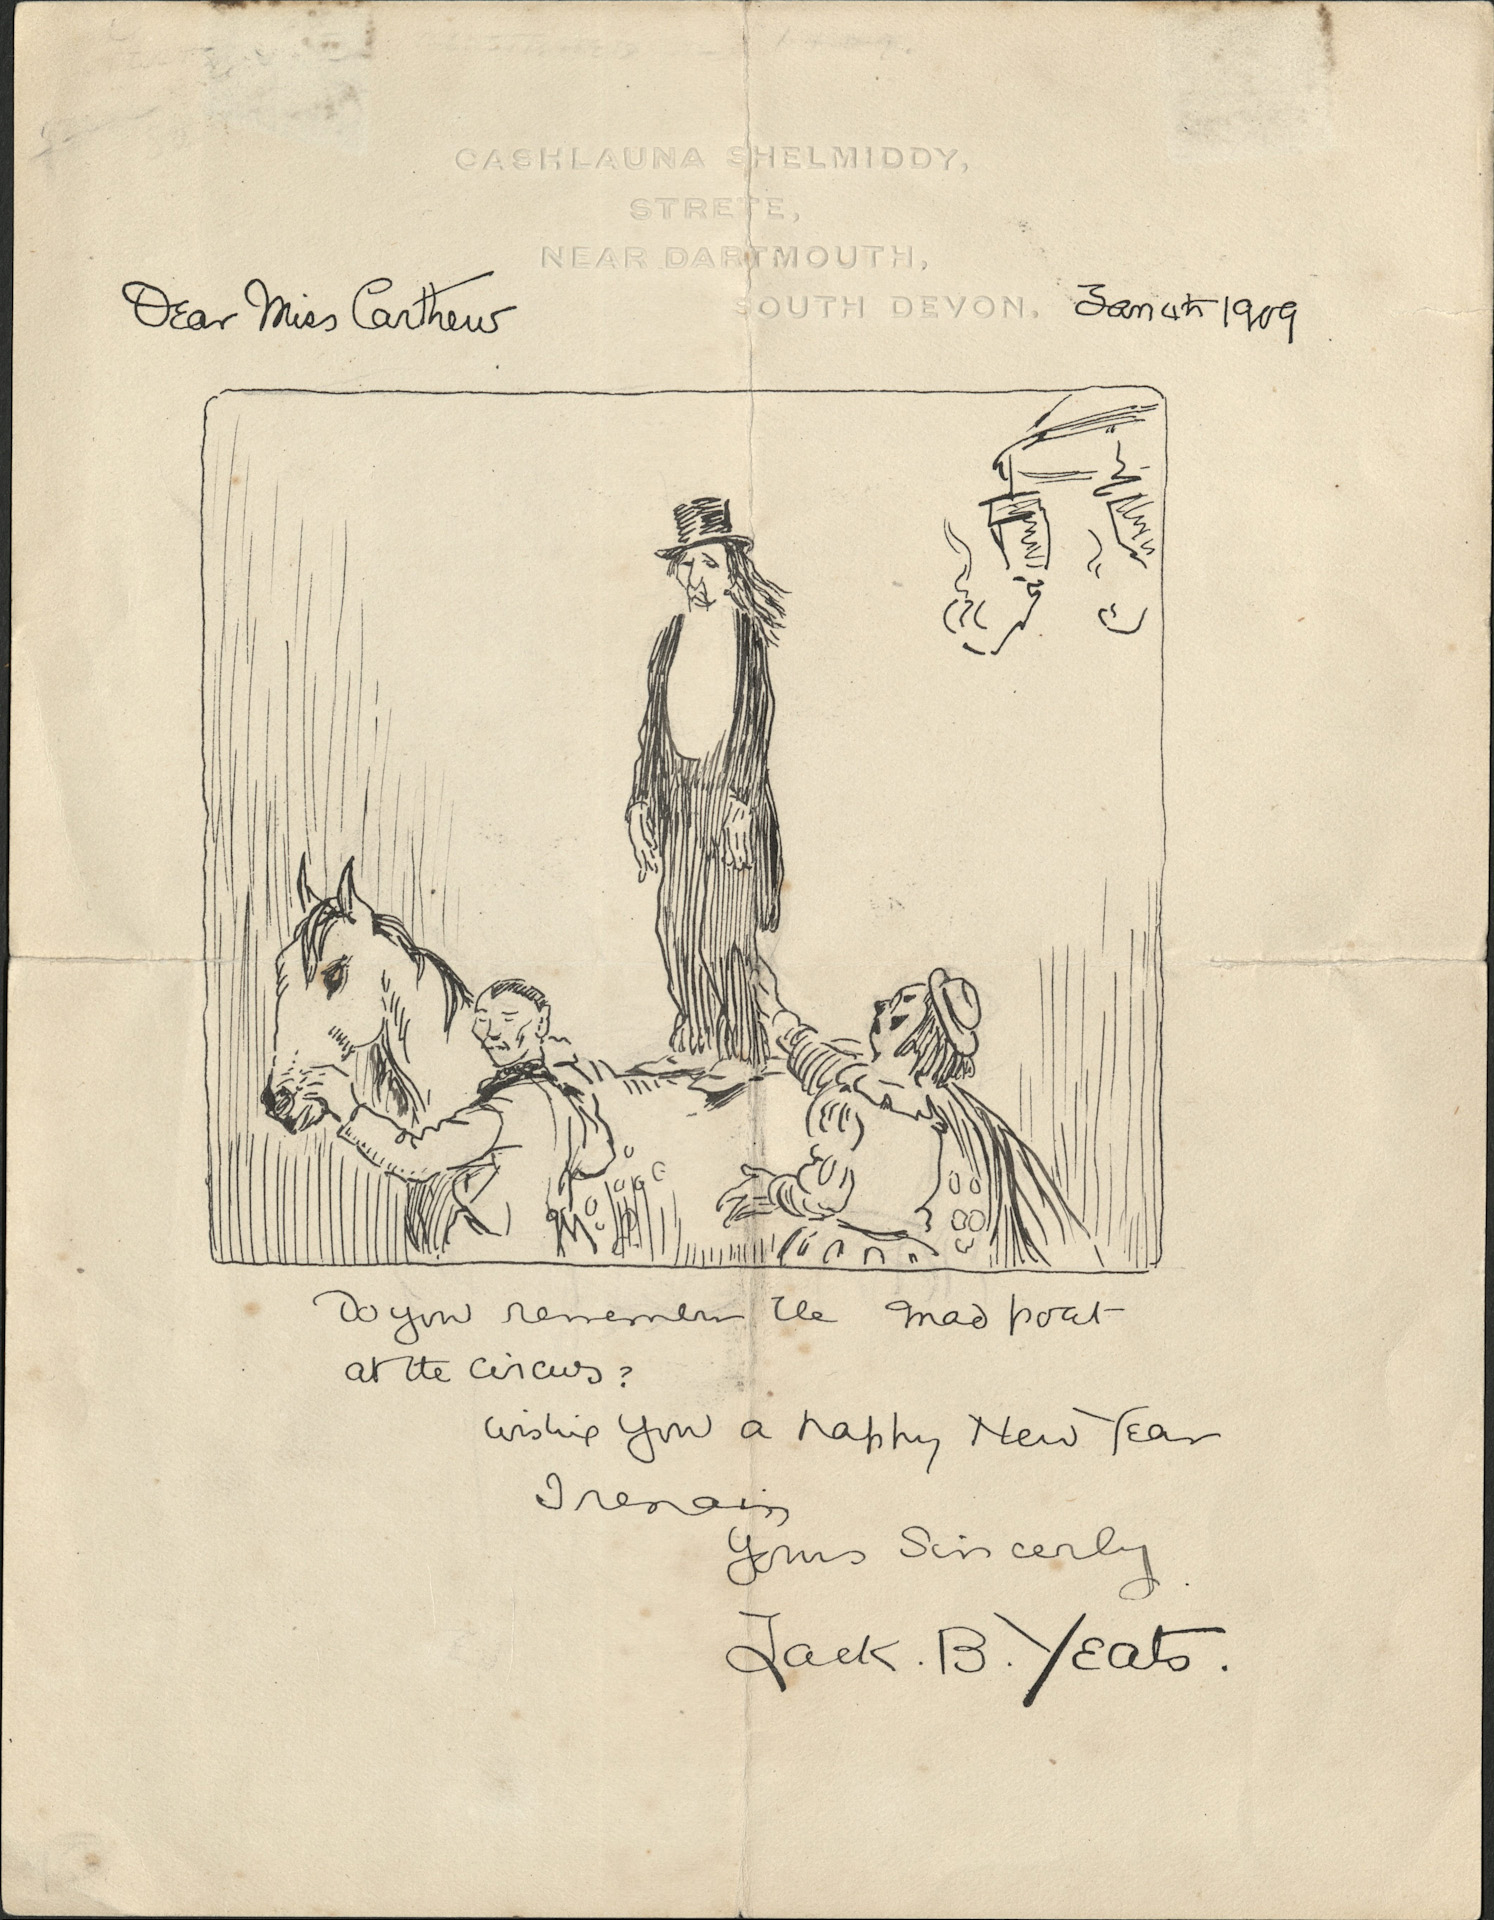 Image of a letter that includes a pen-and-ink sketch by Jack B. Yeats of a circus scene.